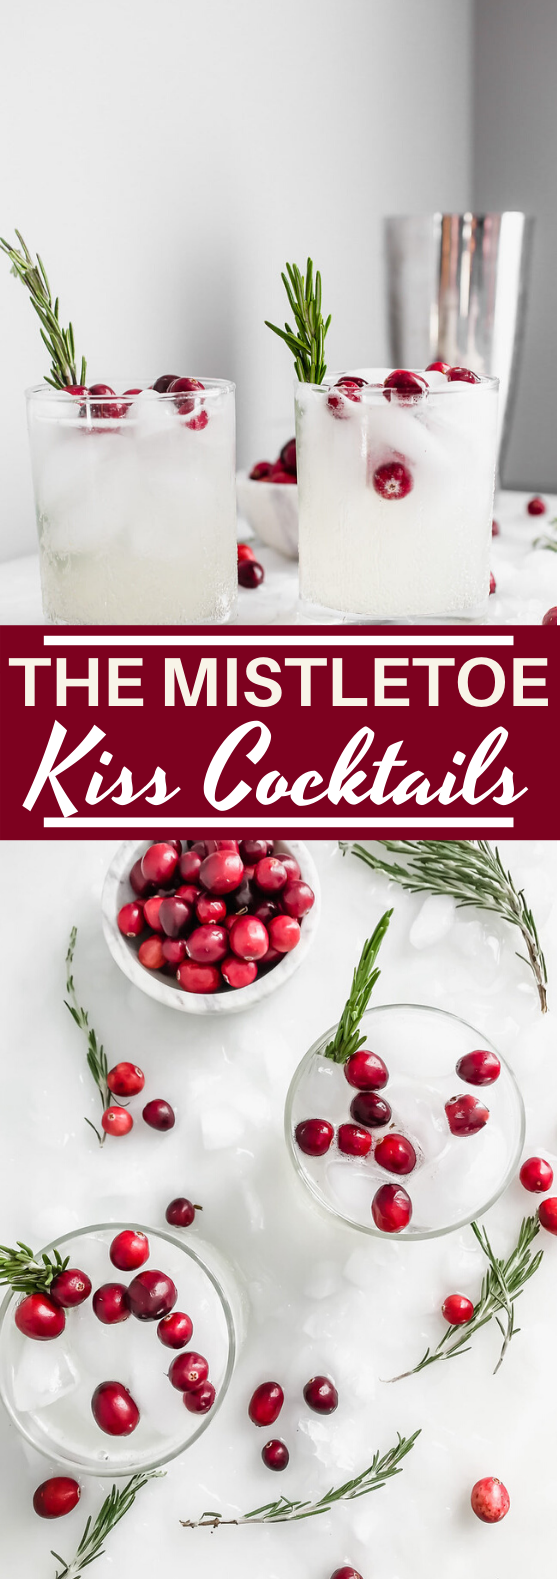 The Mistletoe Kiss Cocktail #drinks #alcohol #cocktails #christmas #recipe